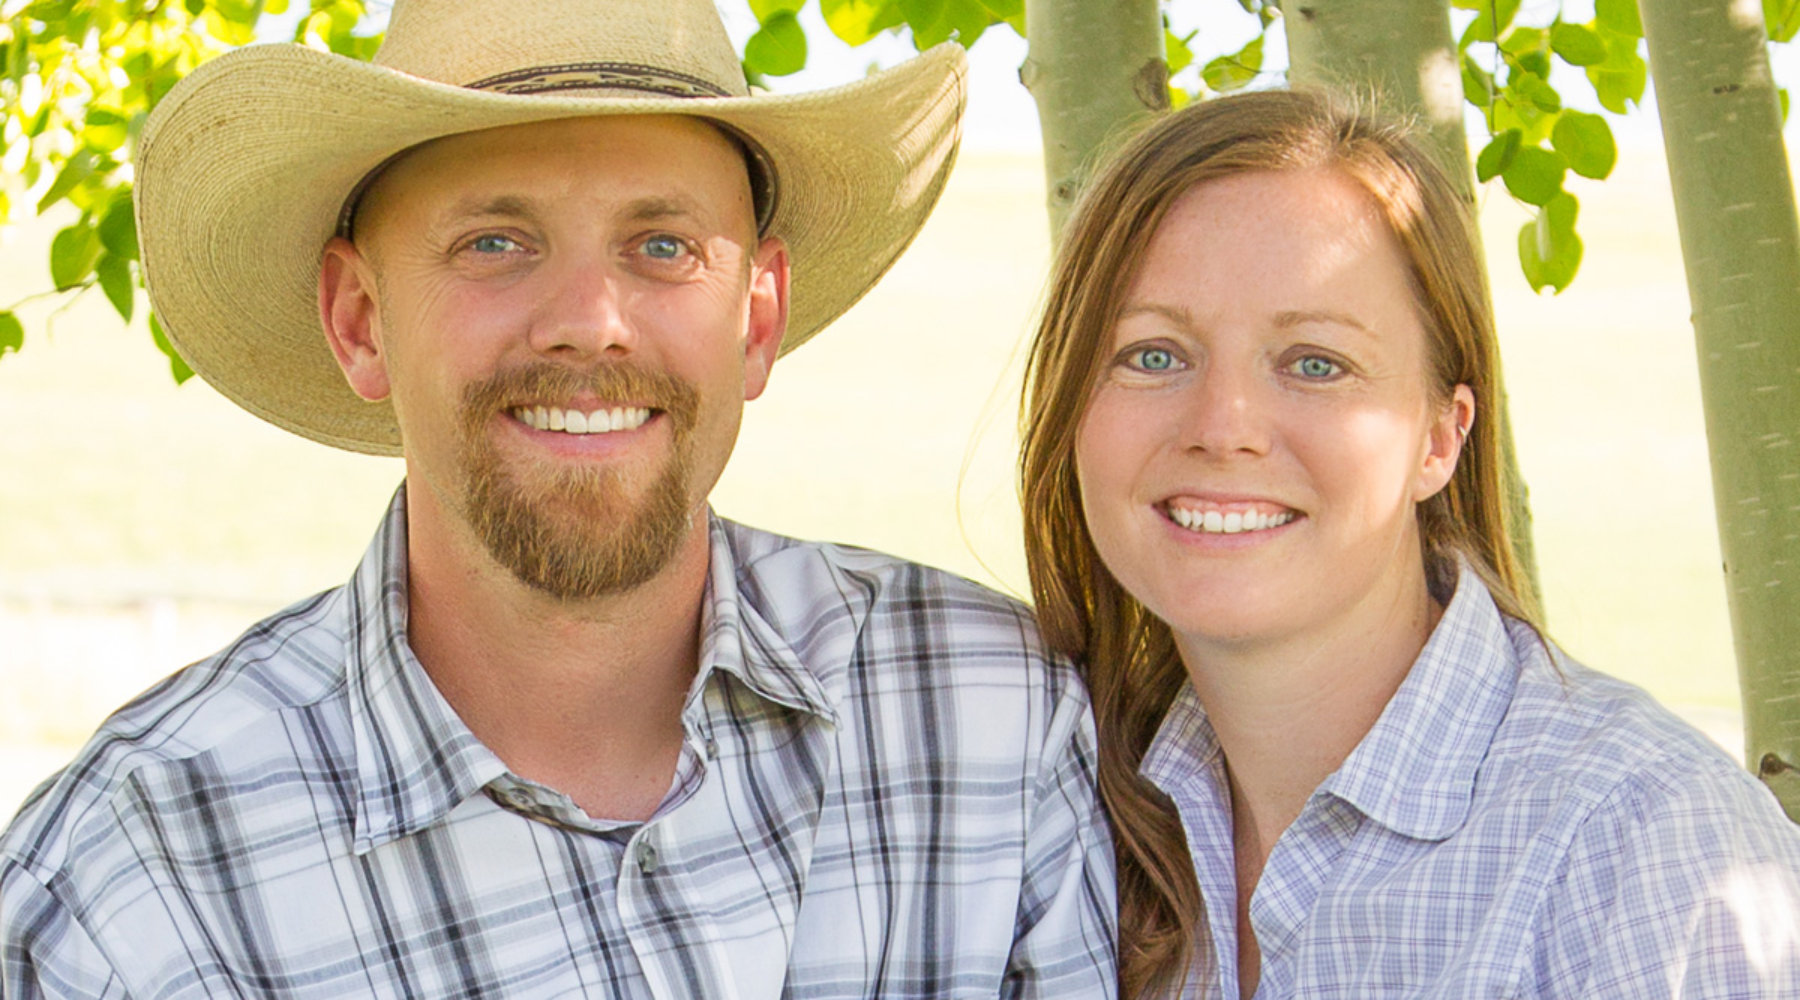 Bozeman_Photographer_family_portrait_couple